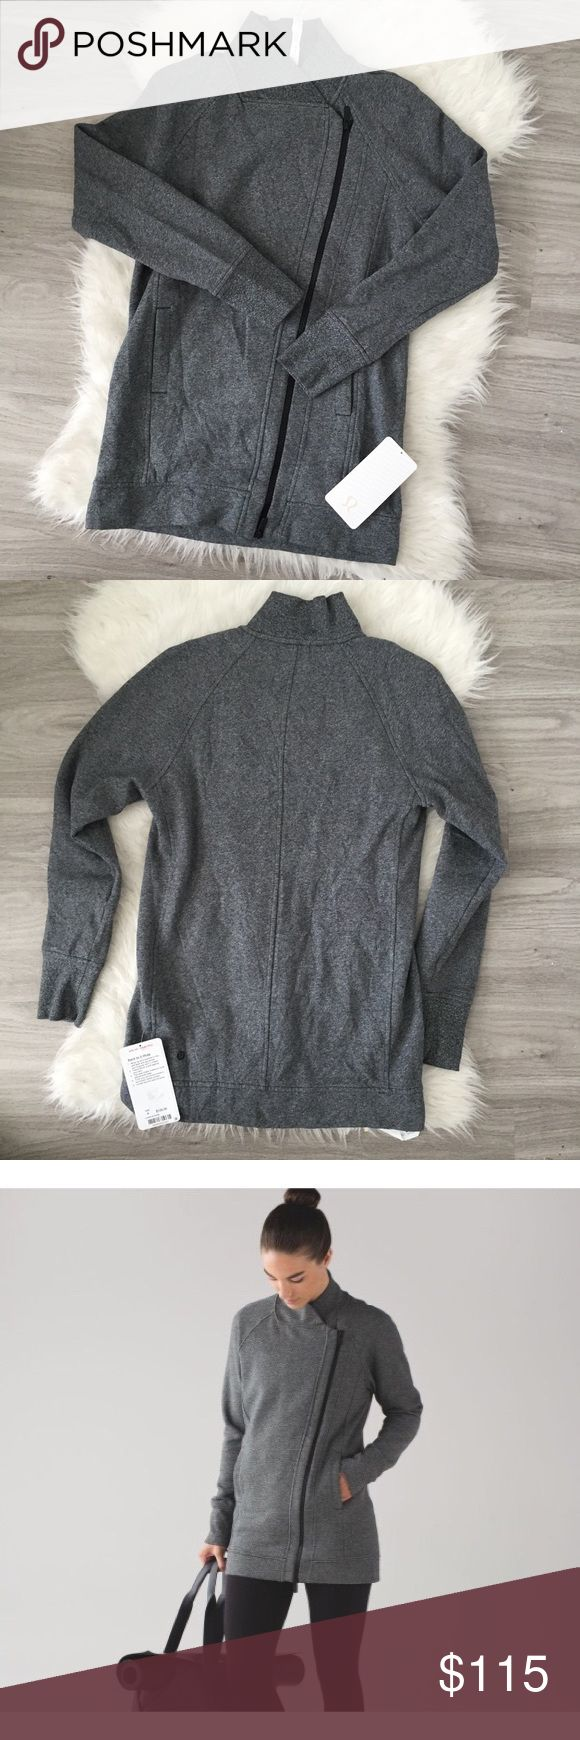 NWT Lululemon Back To It Wrap Jacket size 4 NWT! No flaws, bought online and it doesn't fit! (I'm a 6/8 I found out lol) originally $128. Reasonable offers will be accepted! Bundle & I'll send you an offer! lululemon athletica Jackets & Coats